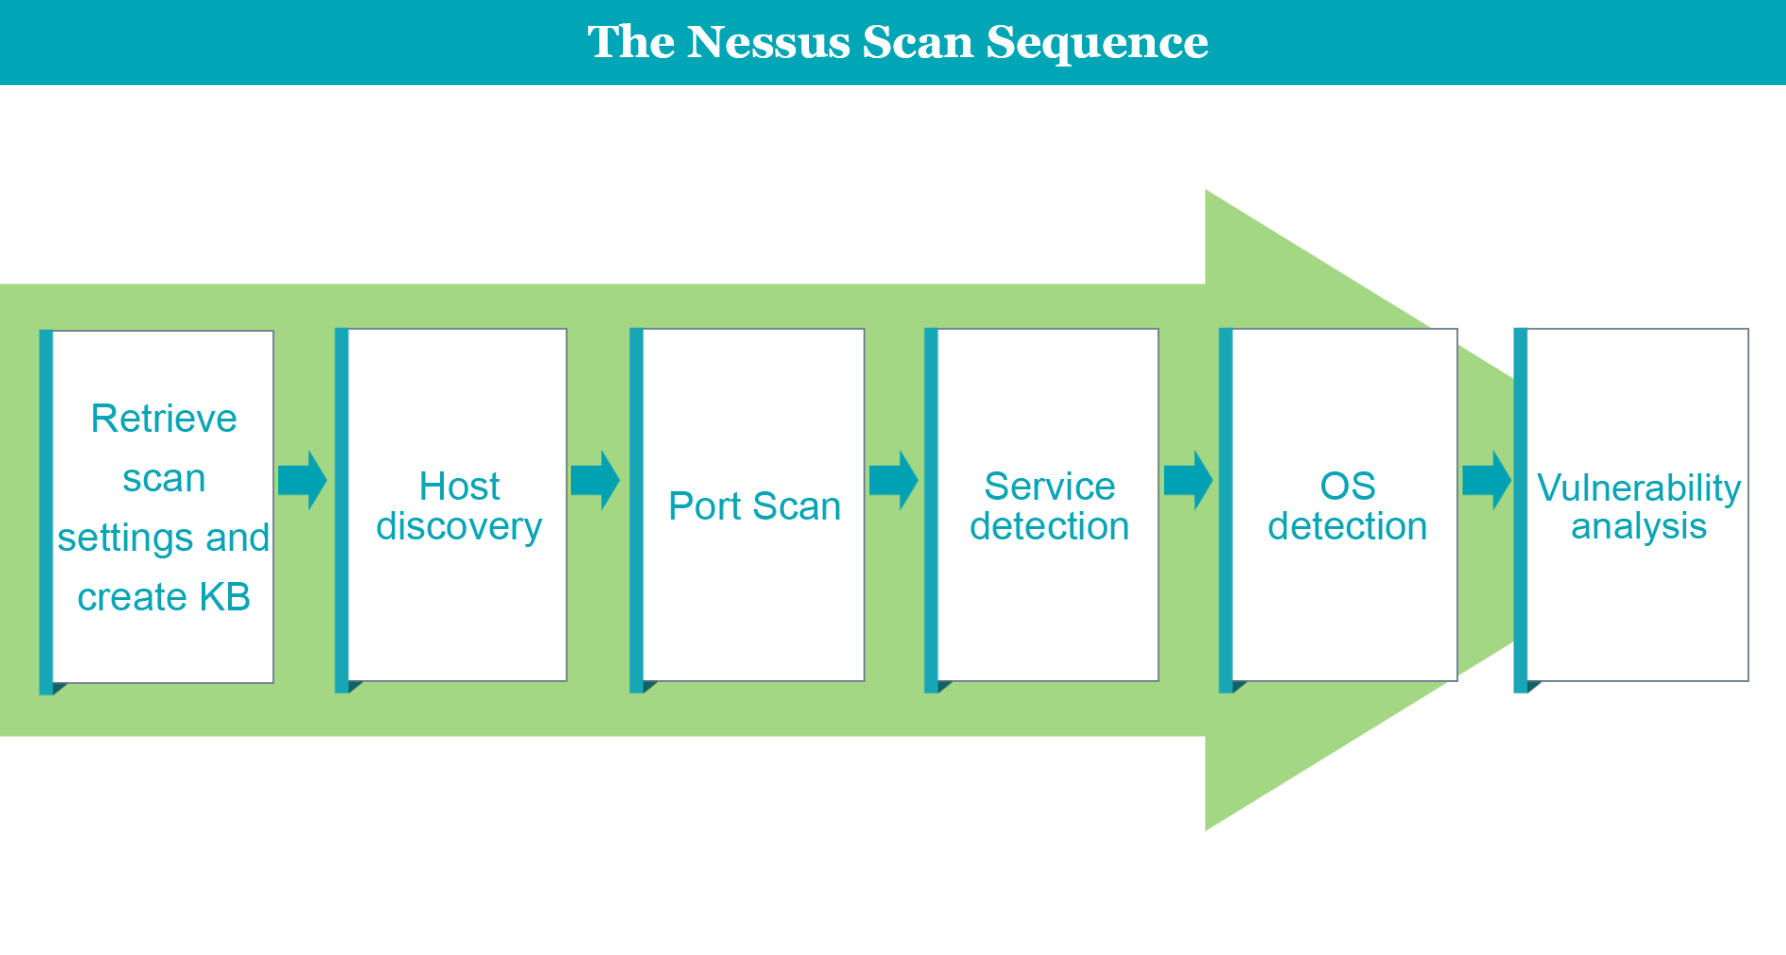 Nessus scan sequence